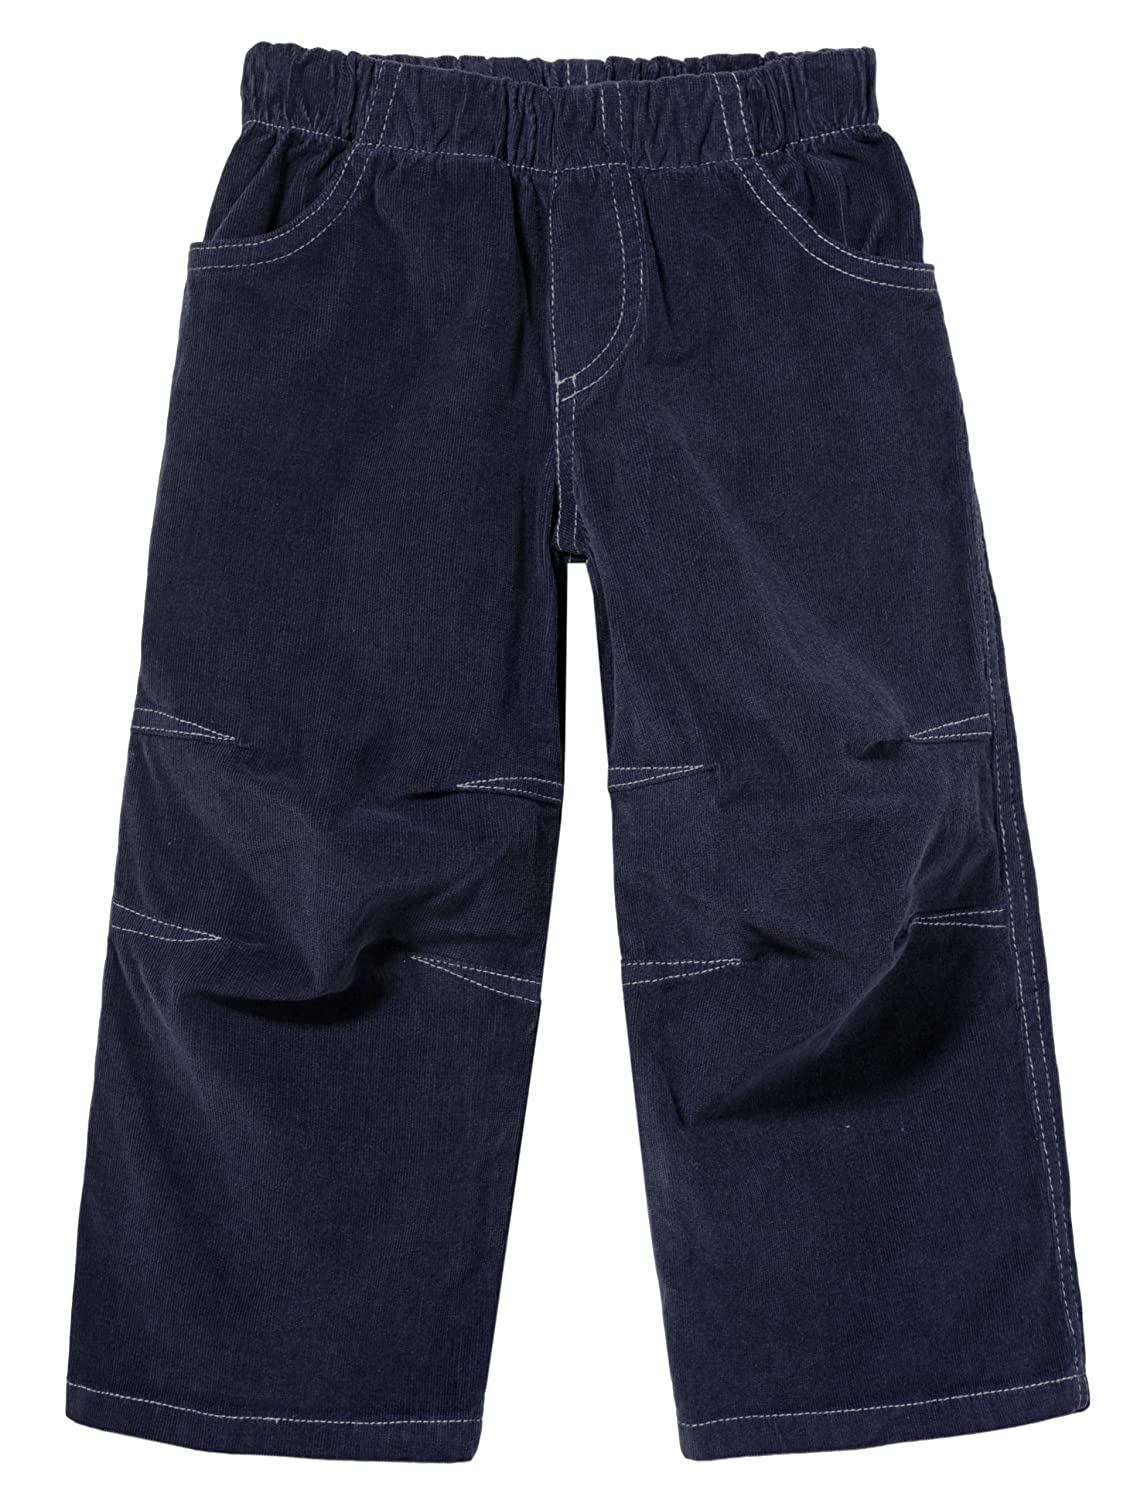 City Threads Boys Stretchy Corduroy Pull Up Pants for Active Kids School or Play